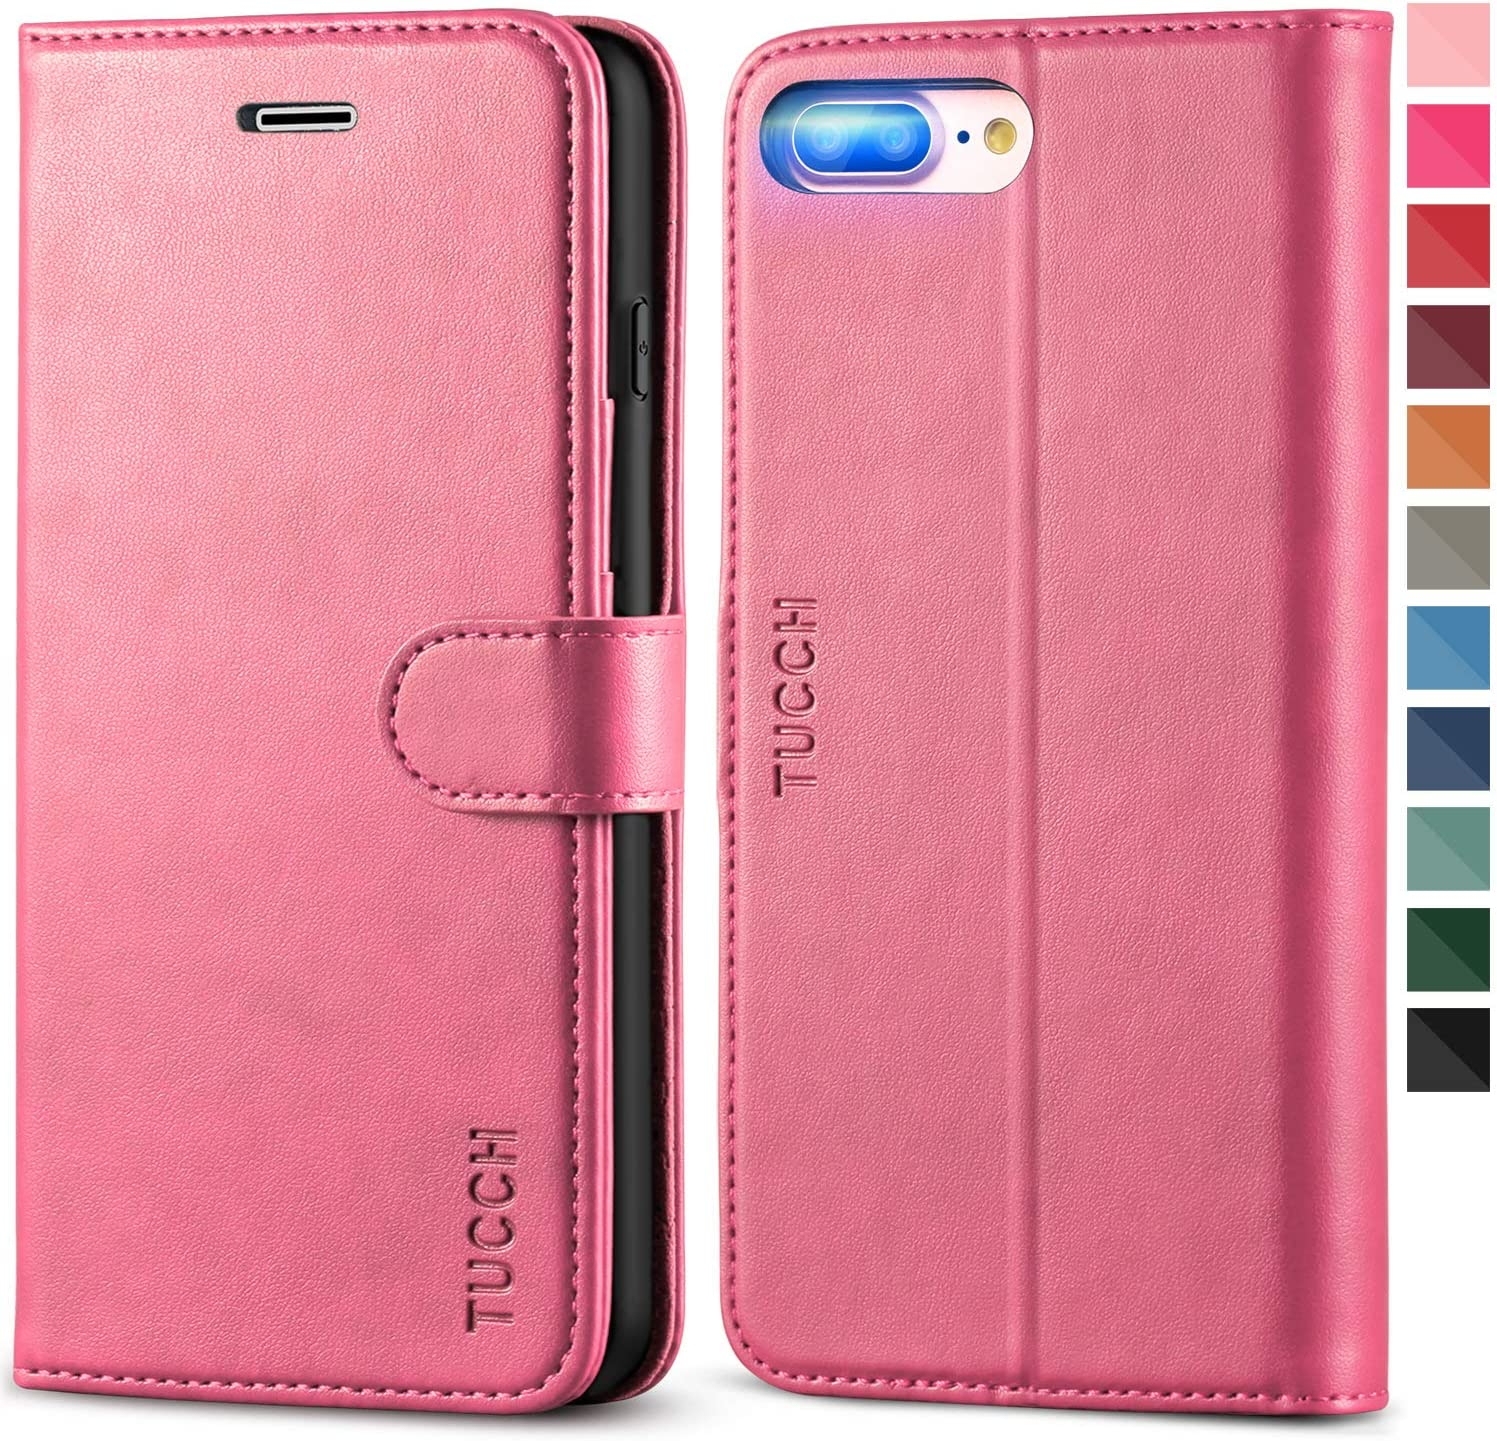 Business-Design Flip Cover for iPhone 8 Plus PU Leather Case Compatible with iPhone 8 Plus Cell Phone